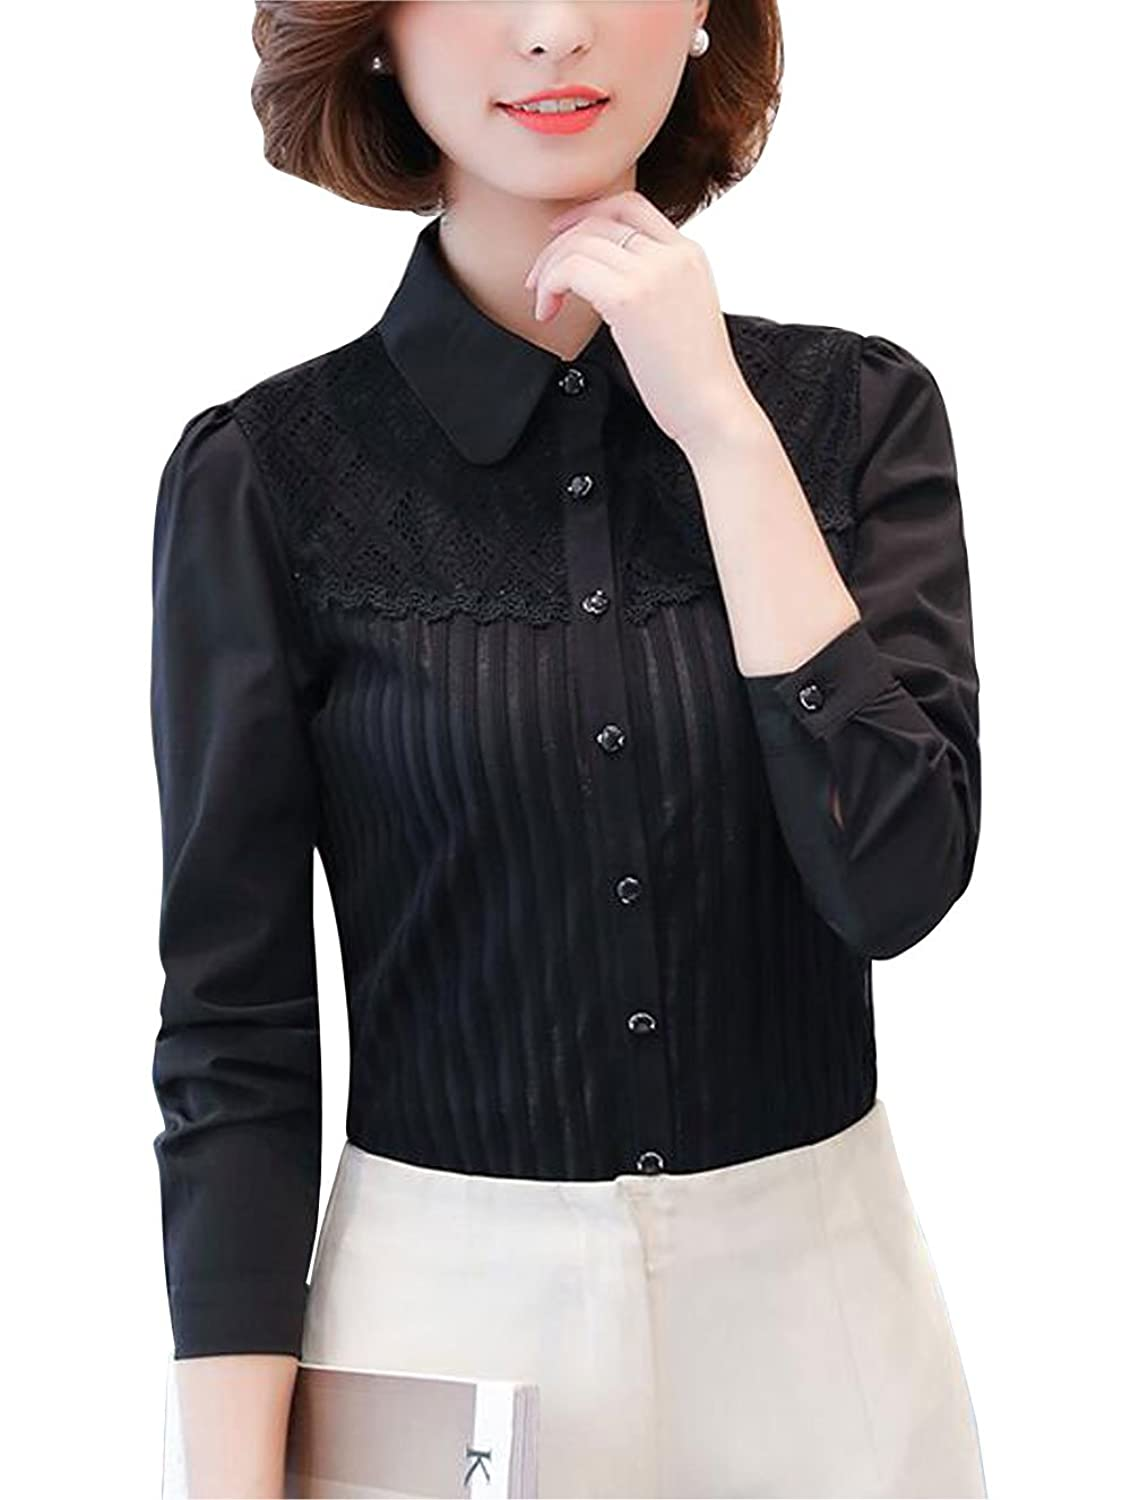 Victorian Blouses, Tops, Shirts, Sweaters Double Plus Open DPO Womens Vintage Collared Pleated Button Down Shirt Long Sleeve Lace Stretchy Blouse $23.59 AT vintagedancer.com